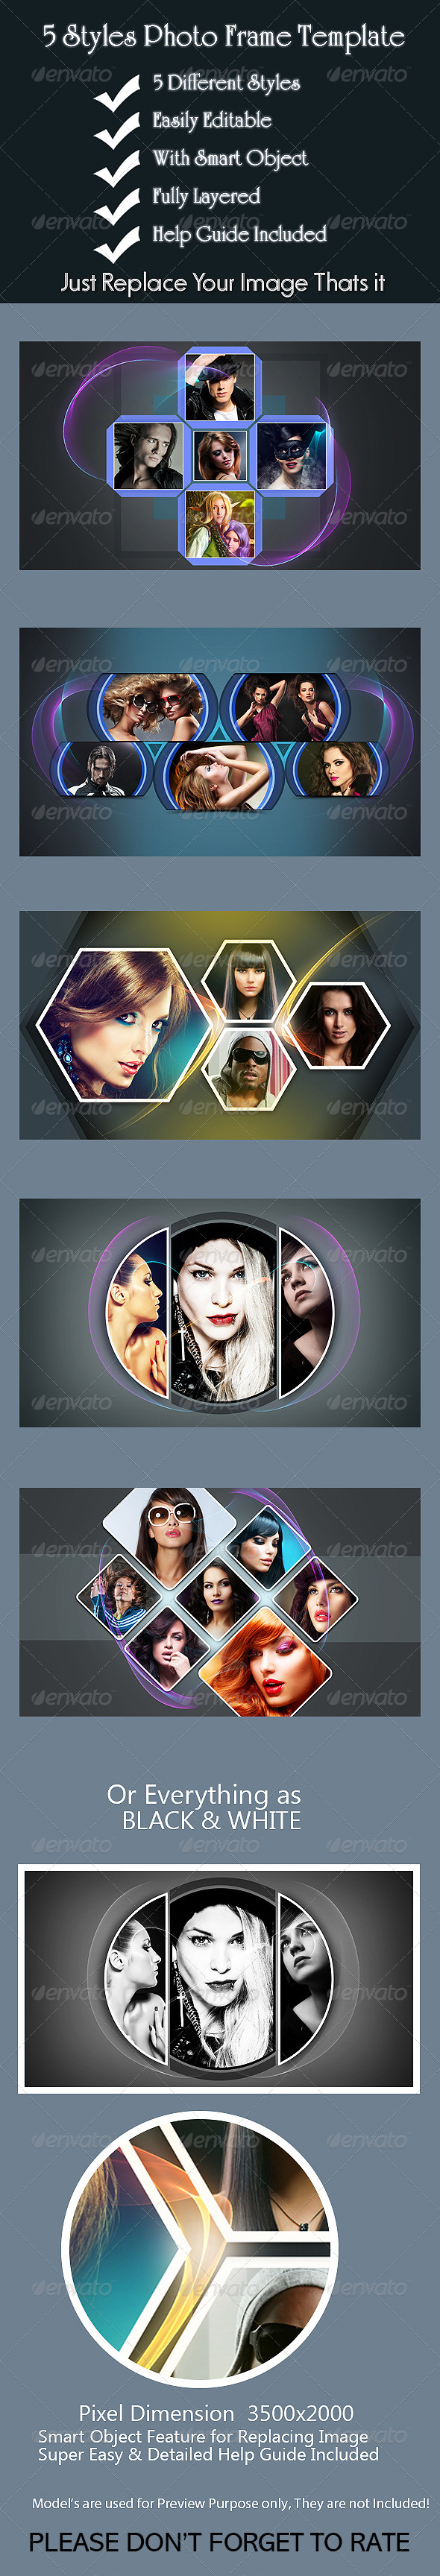 GraphicRiver 5 Styles Photo Frame Template 8037667